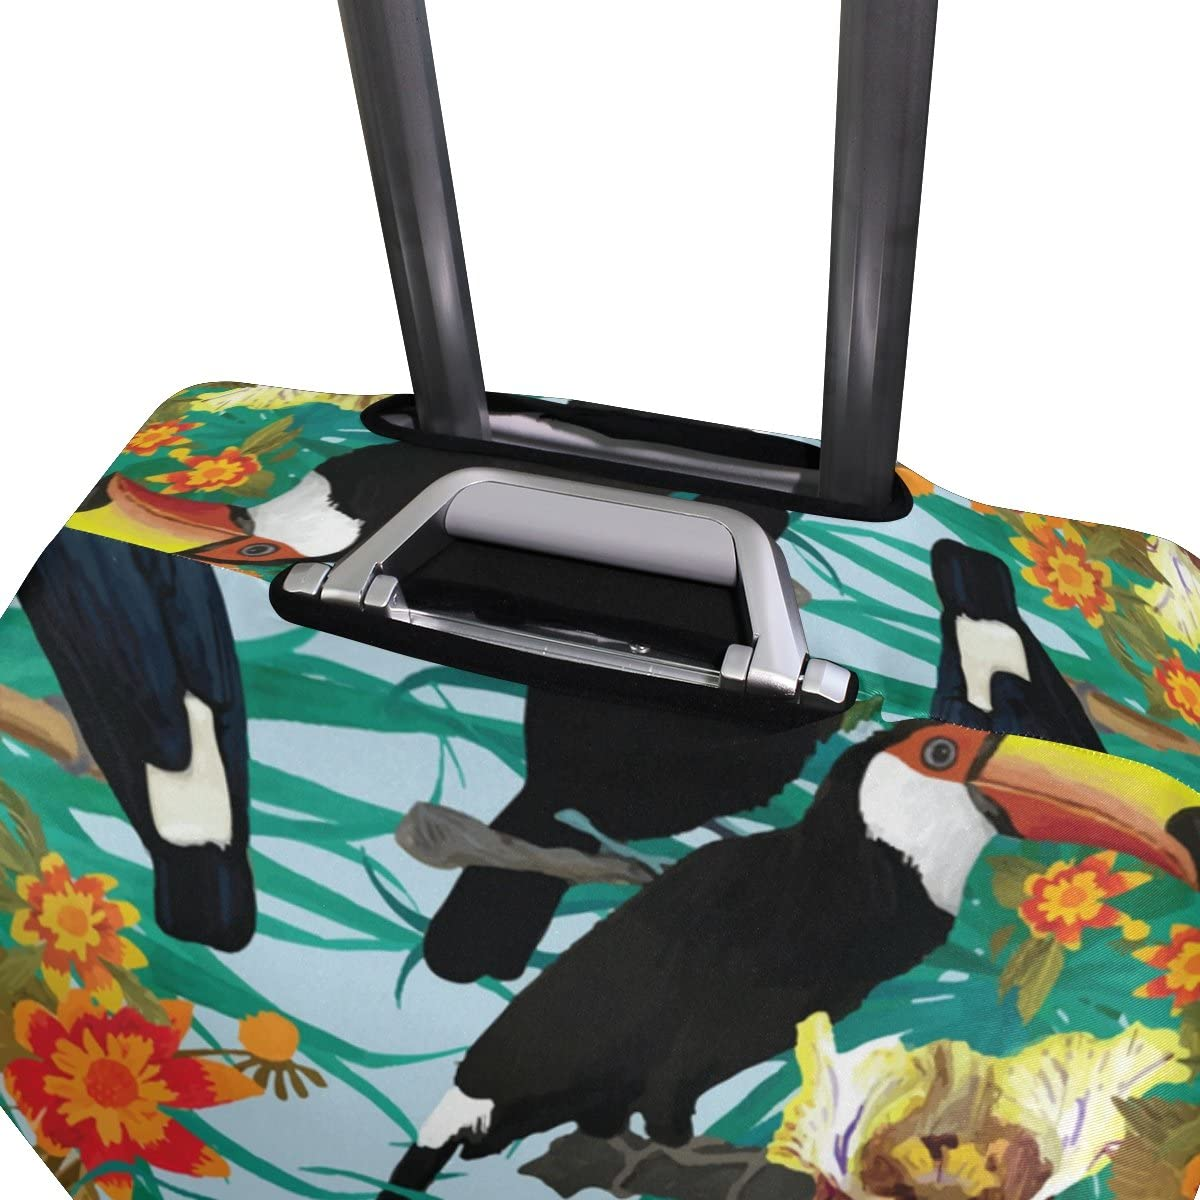 OREZI Luggage Protector Bird Toucans And Flowers Travel Luggage Elastic Cover Suitcase Washable and Durable Anti-Scratch Stretchy Case Cover Fits 18-32 Inches